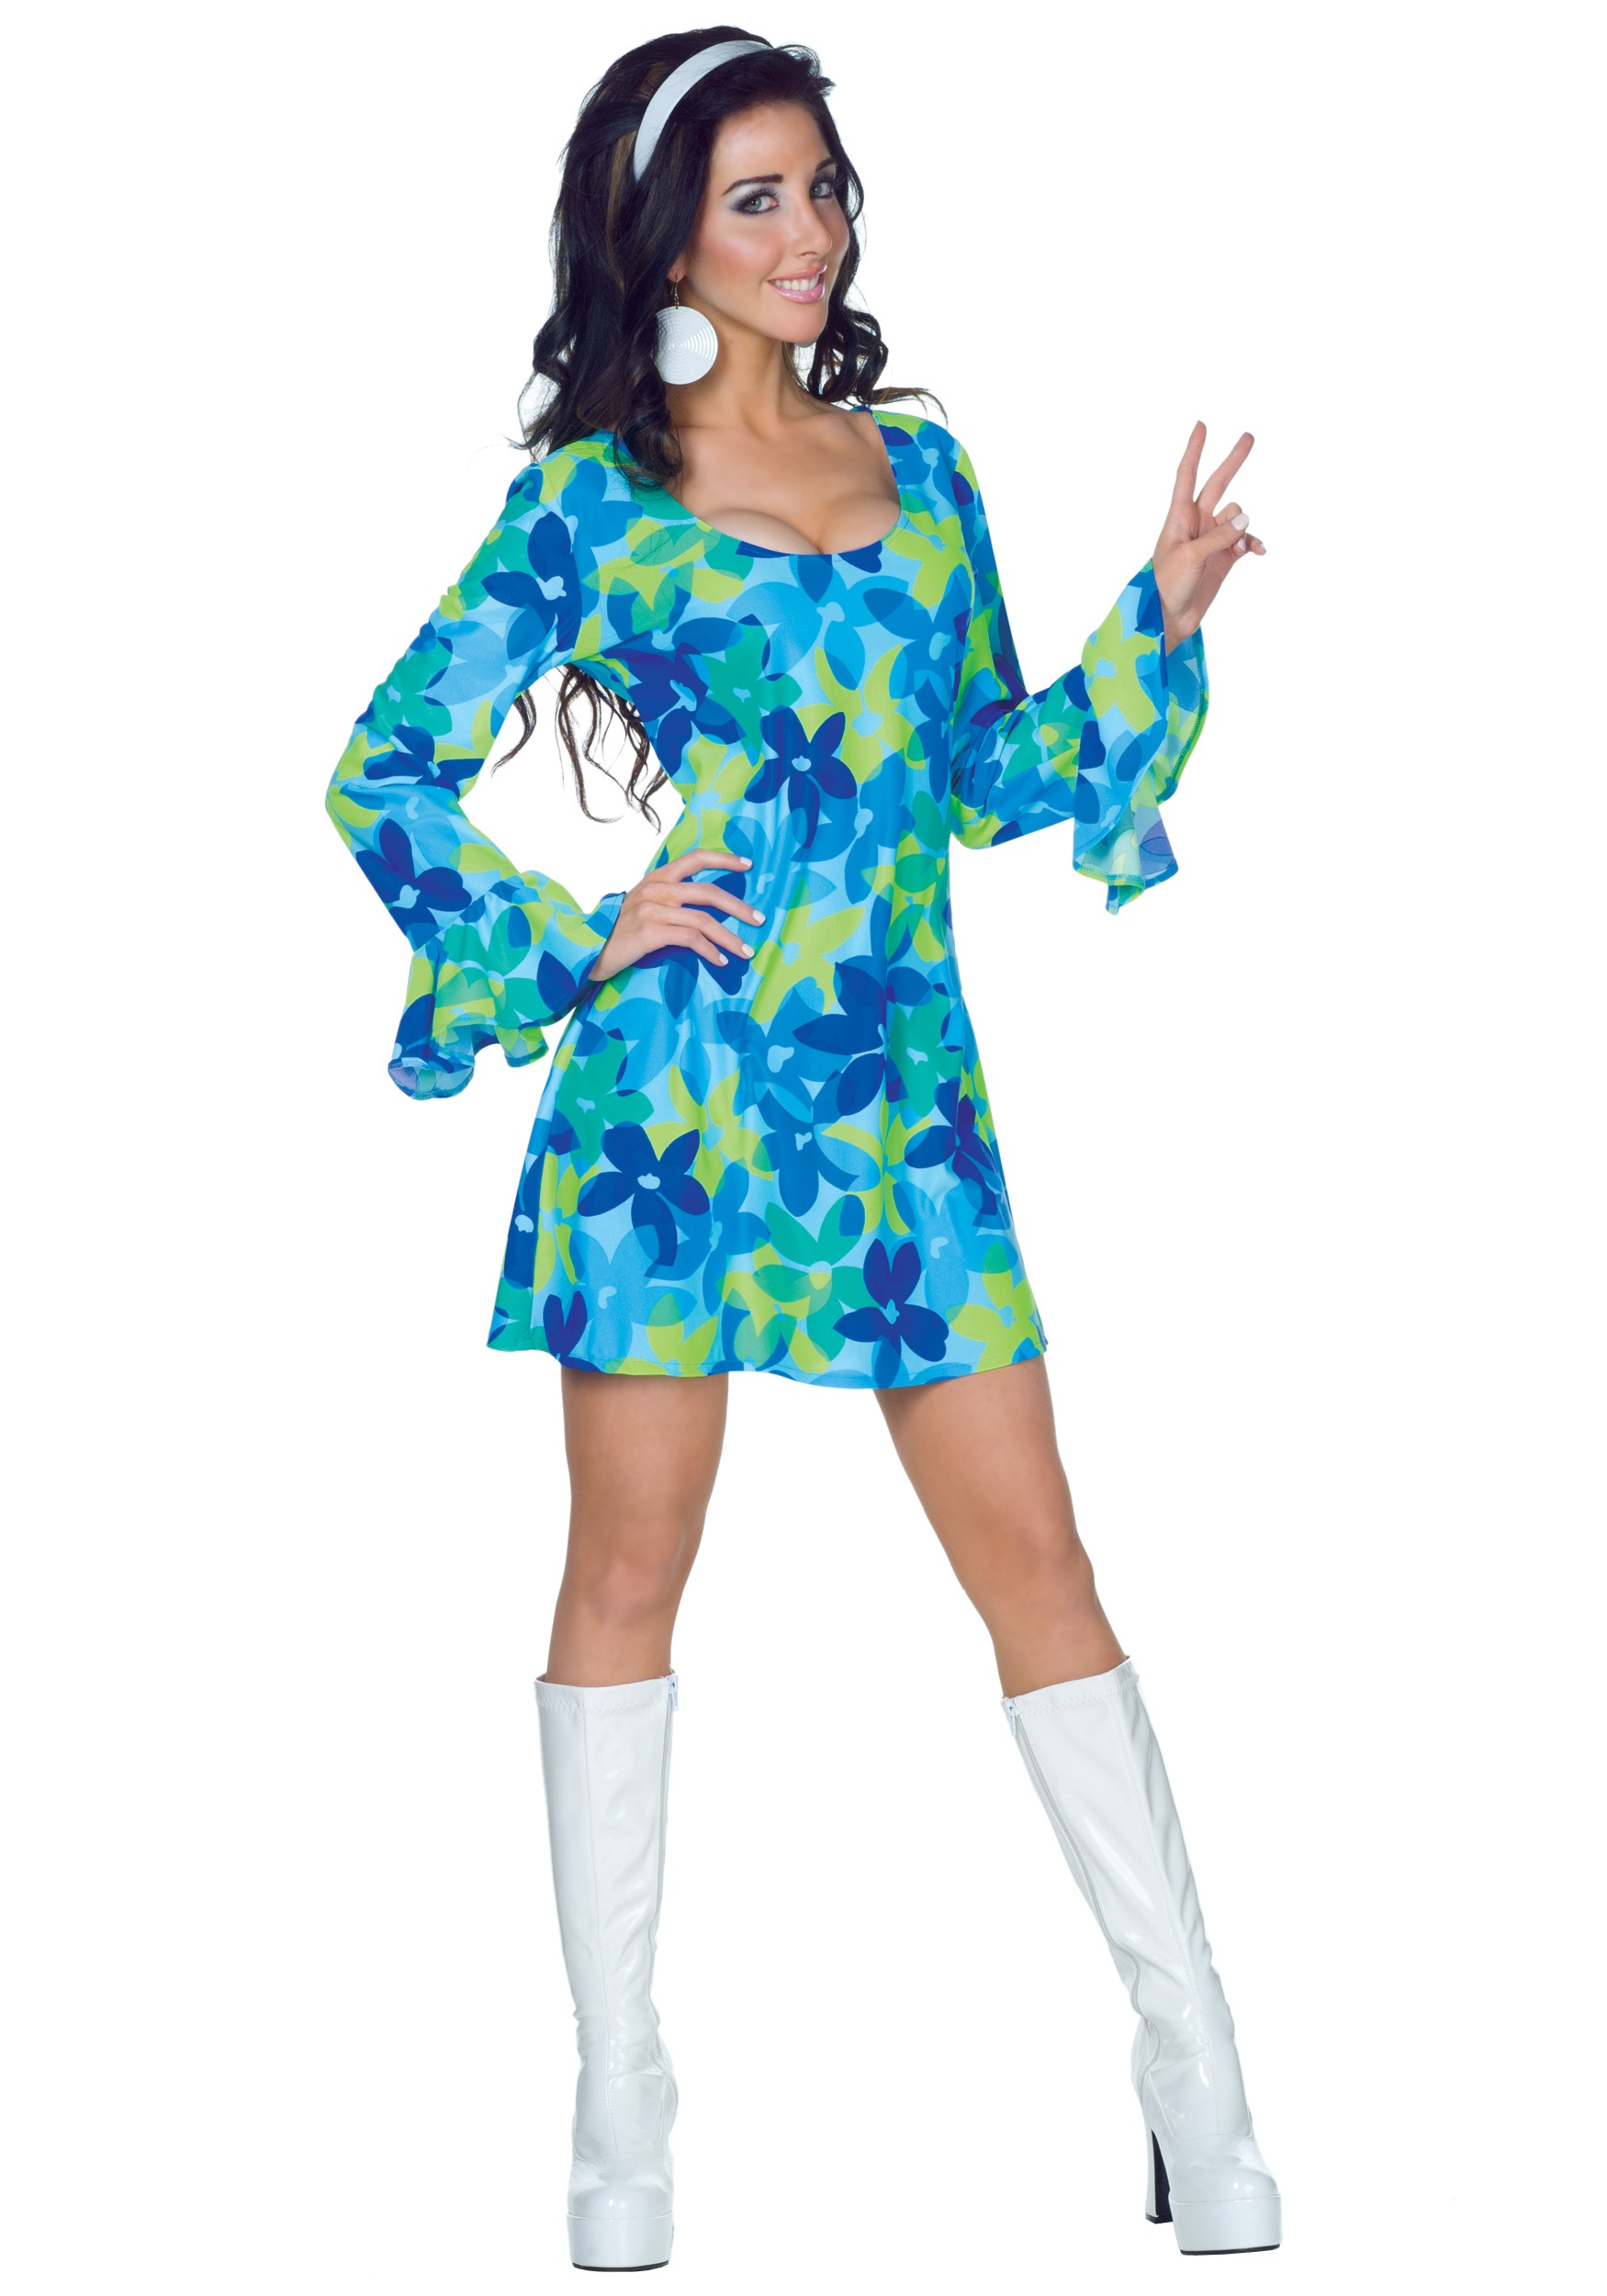 Retro Fashion For Women In 70s 80s s Wild Flower Dress Costume